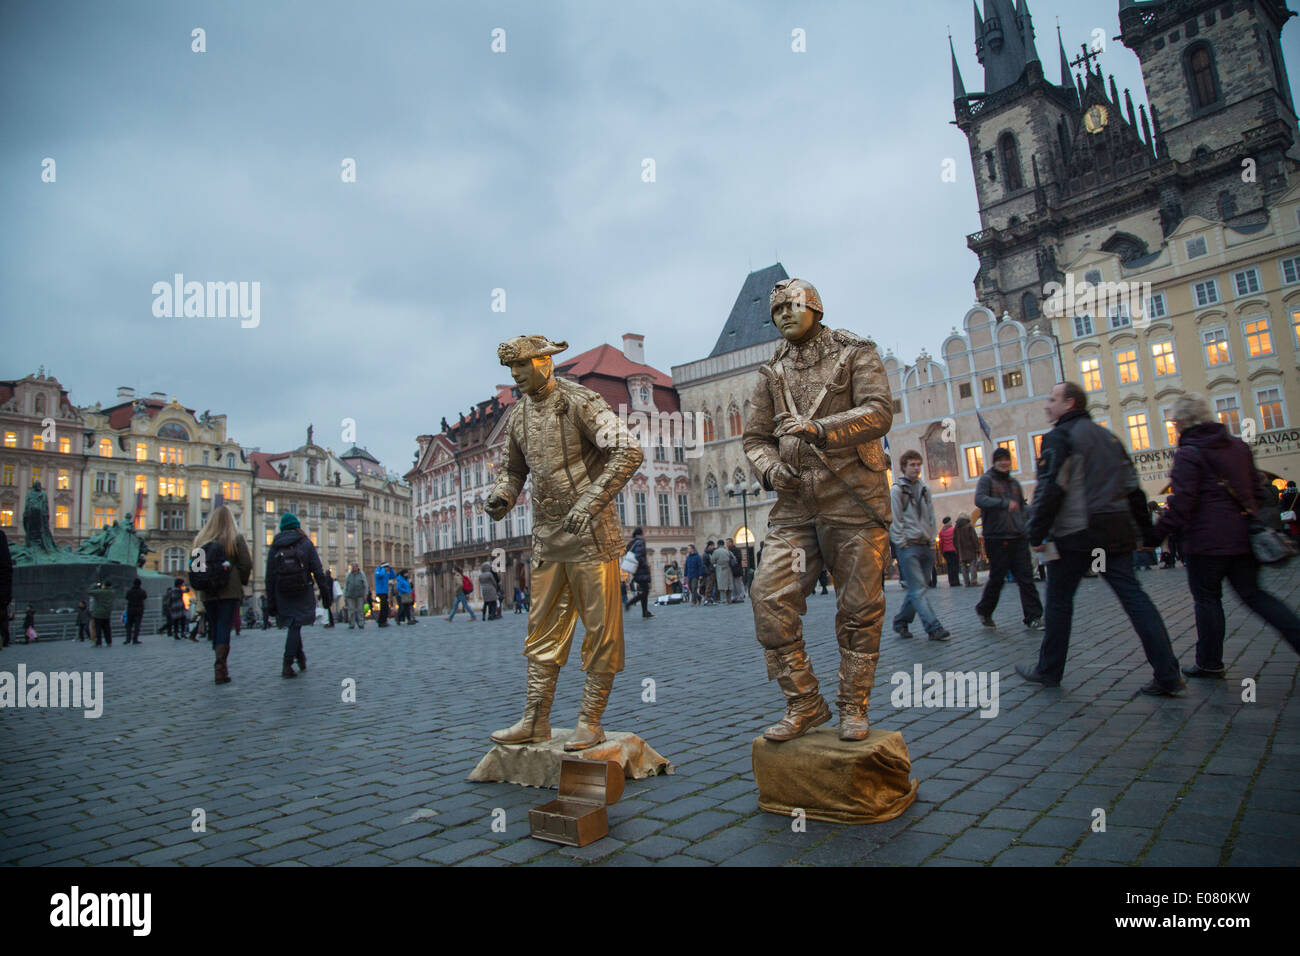 Street performers in Old Town Square - Prague, Czech Republic. - Stock Image